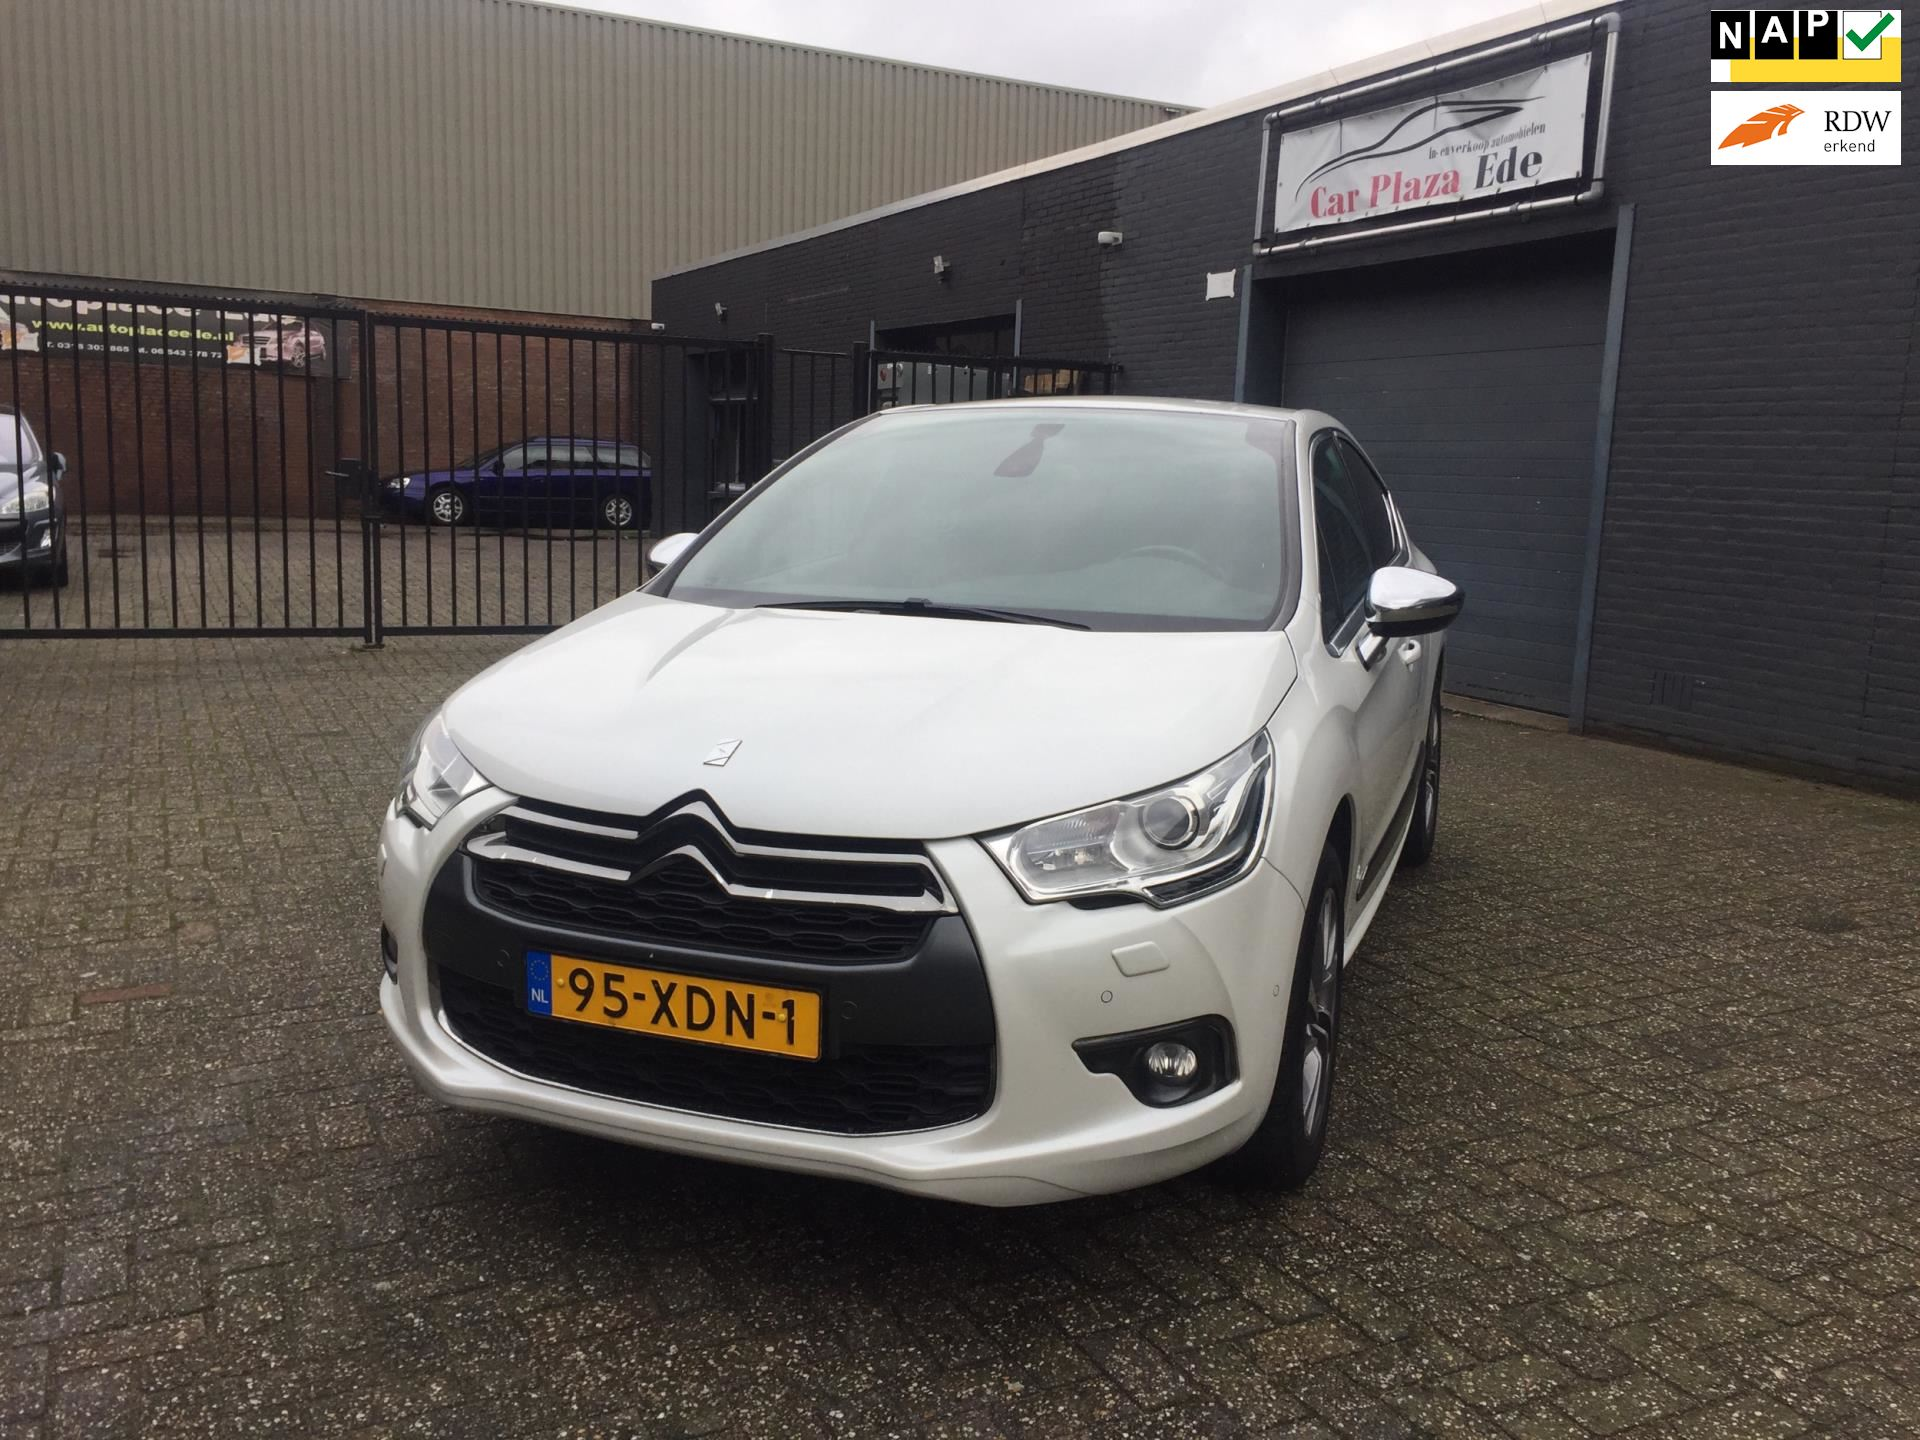 Citroen DS4 occasion - Carplaza Ede